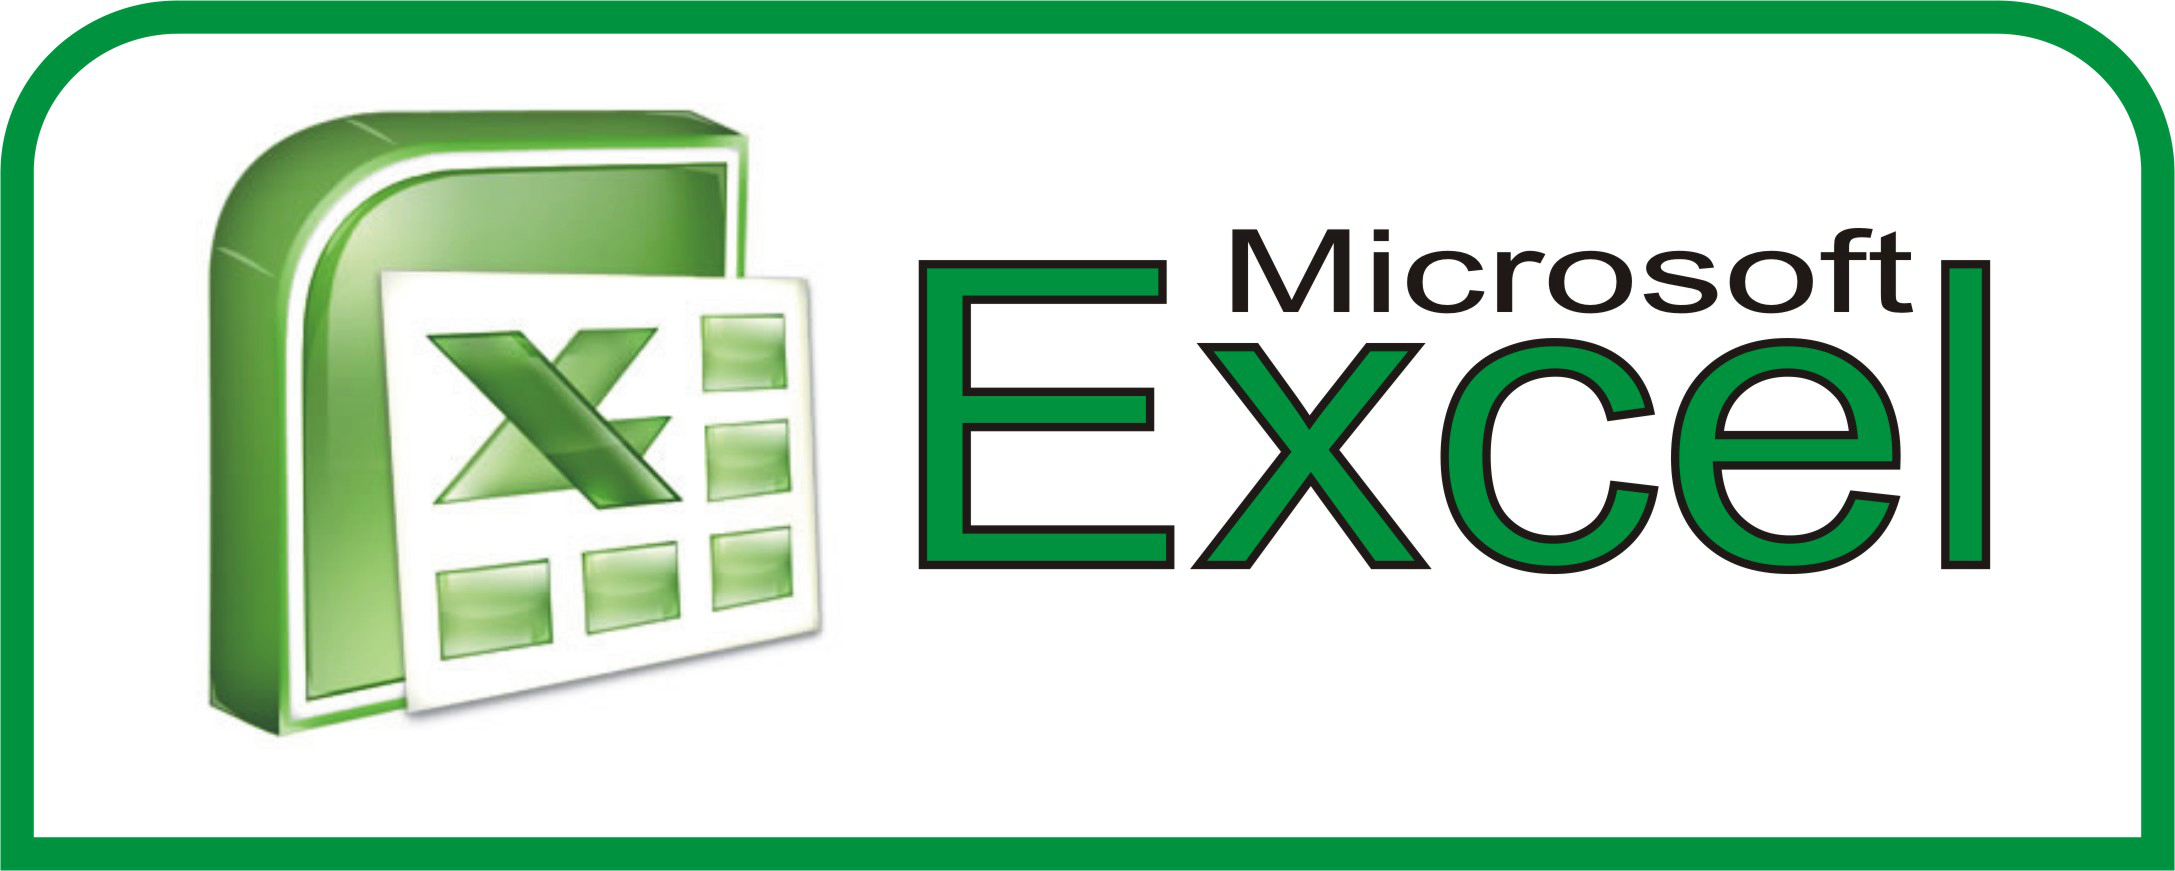 Ediblewildsus  Gorgeous  Excel Shortcuts You Probably Didnt Know About  Techdissected With Outstanding How Do You Find Duplicates In Excel Besides How To Subtract Cells In Excel Furthermore Num Error In Excel With Beauteous Excel Options Also How Do I Unhide Columns In Excel In Addition How To Recover Excel File And Autofit Column Width Excel As Well As How To View Duplicates In Excel Additionally How To Subscript In Excel From Techdissectedcom With Ediblewildsus  Outstanding  Excel Shortcuts You Probably Didnt Know About  Techdissected With Beauteous How Do You Find Duplicates In Excel Besides How To Subtract Cells In Excel Furthermore Num Error In Excel And Gorgeous Excel Options Also How Do I Unhide Columns In Excel In Addition How To Recover Excel File From Techdissectedcom